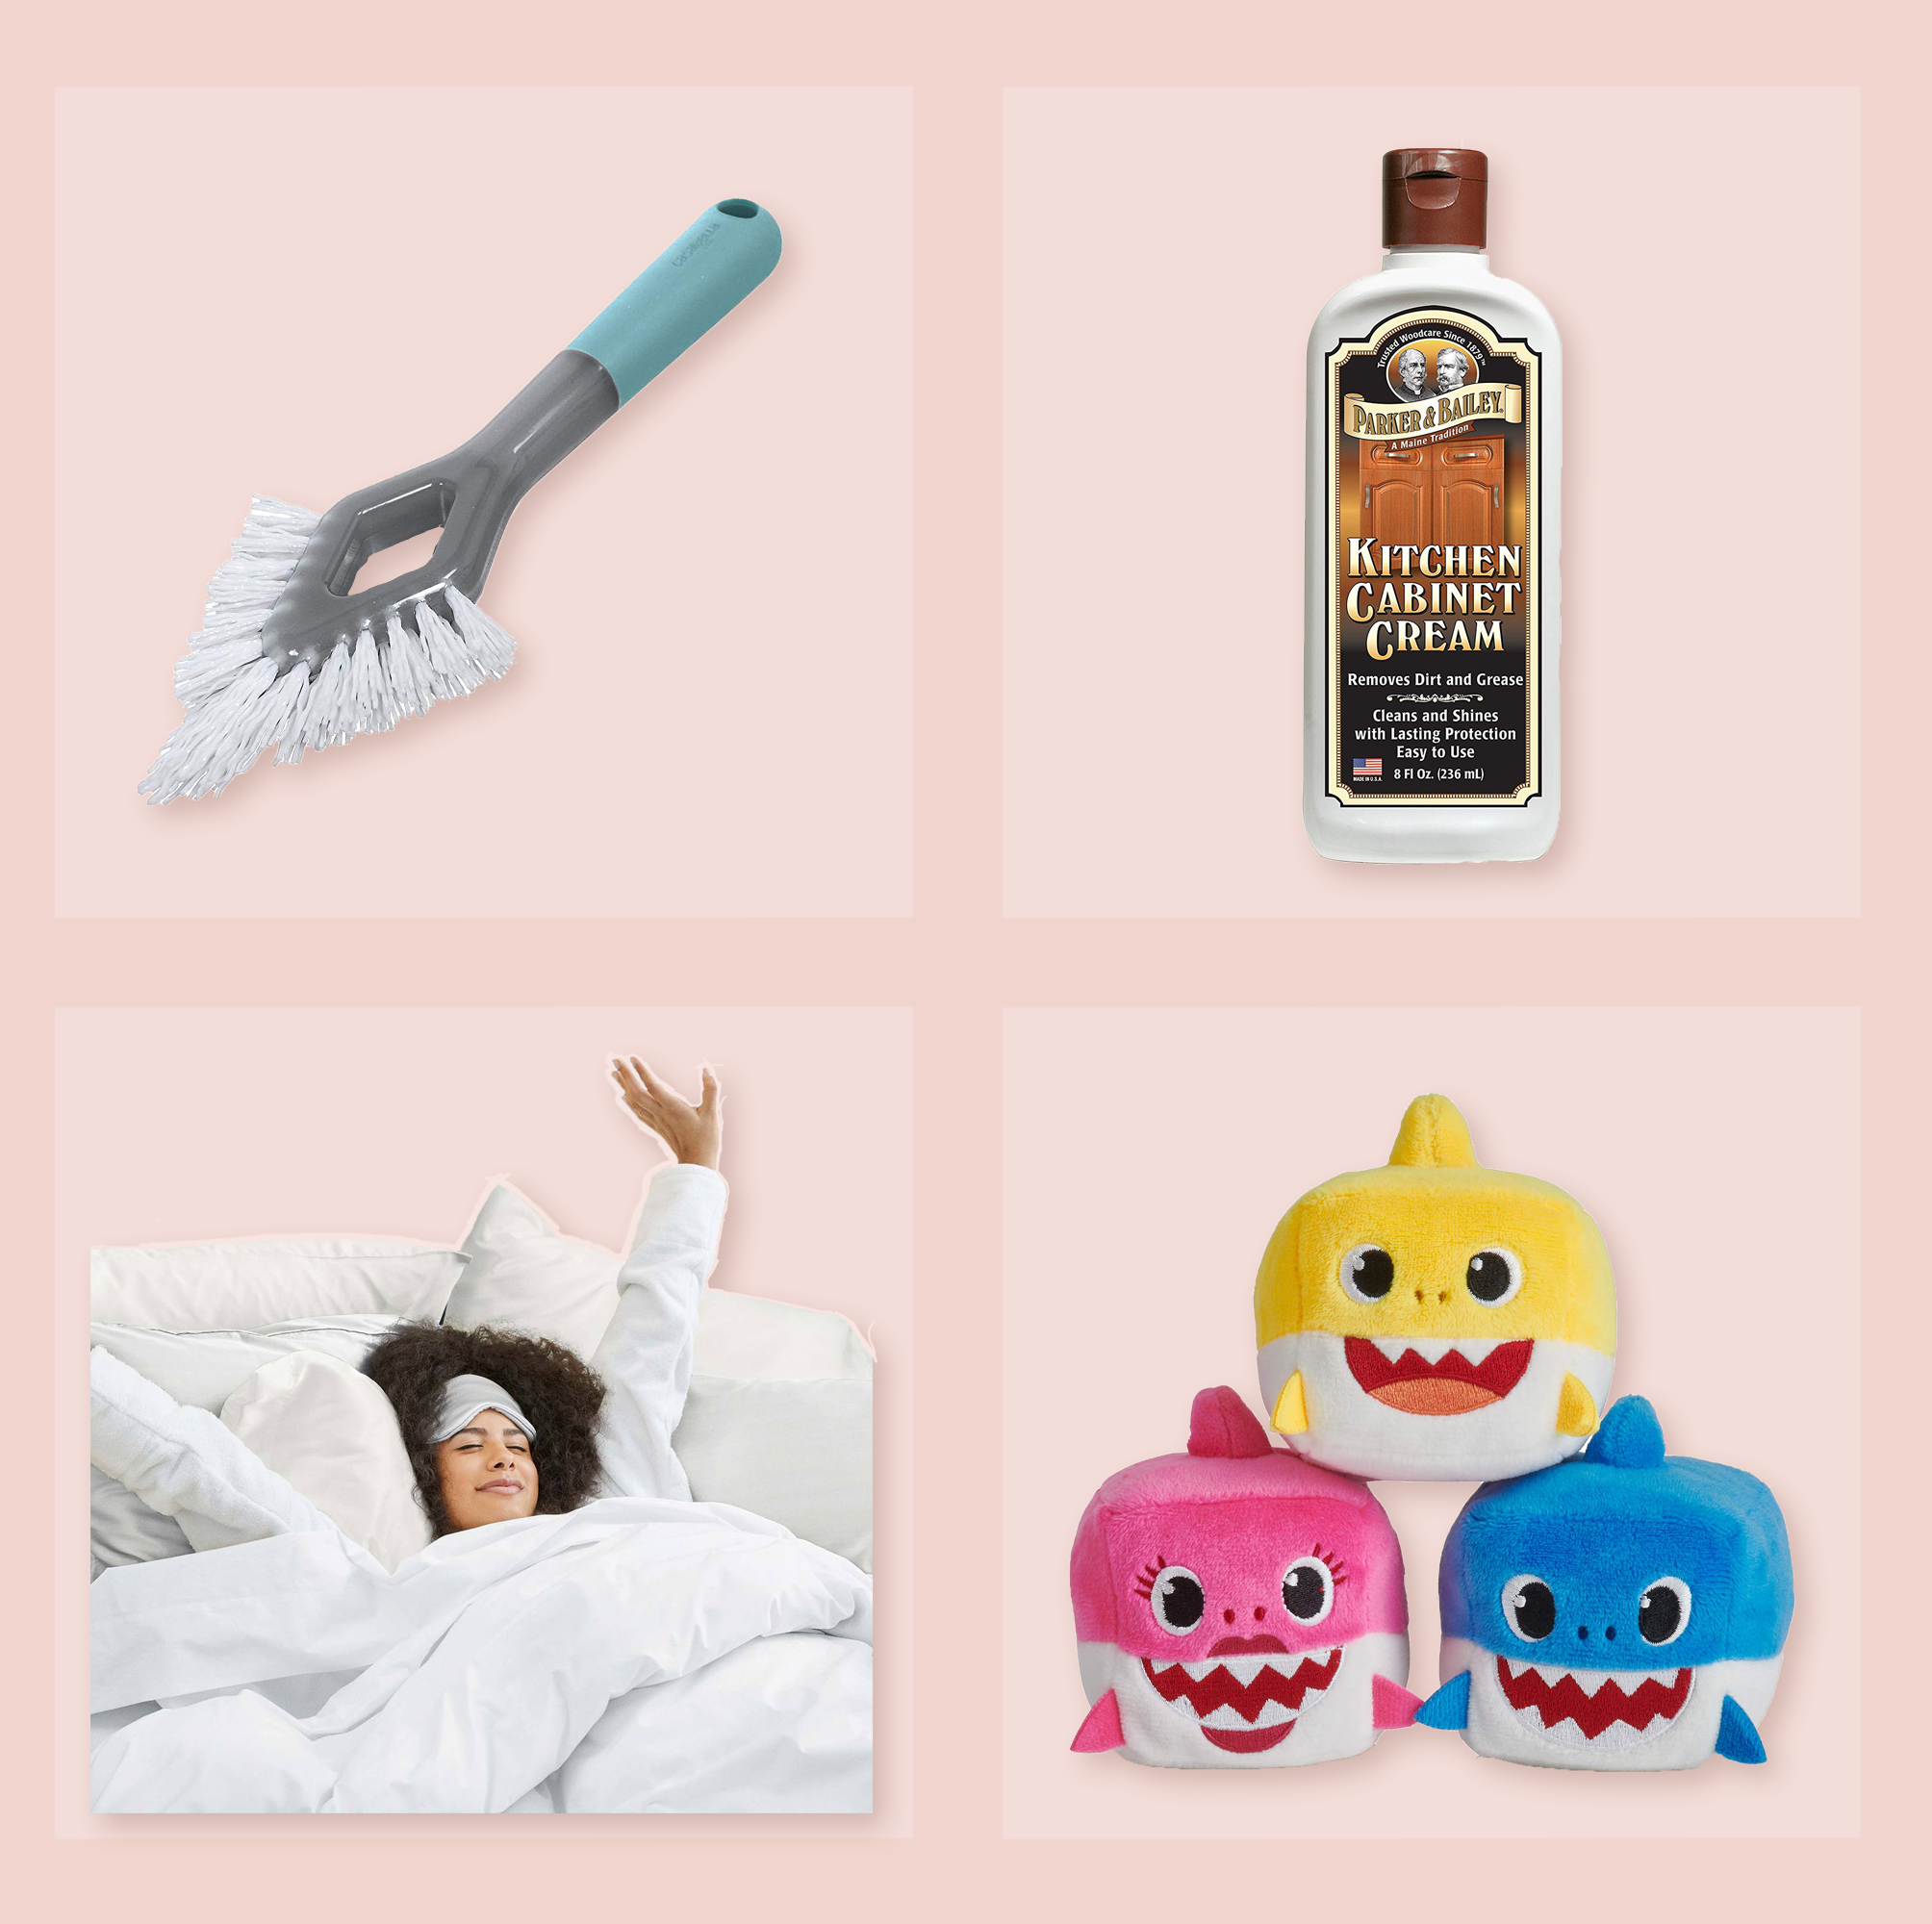 The 10 Most Popular Things Good Housekeeping Readers Bought Last Month